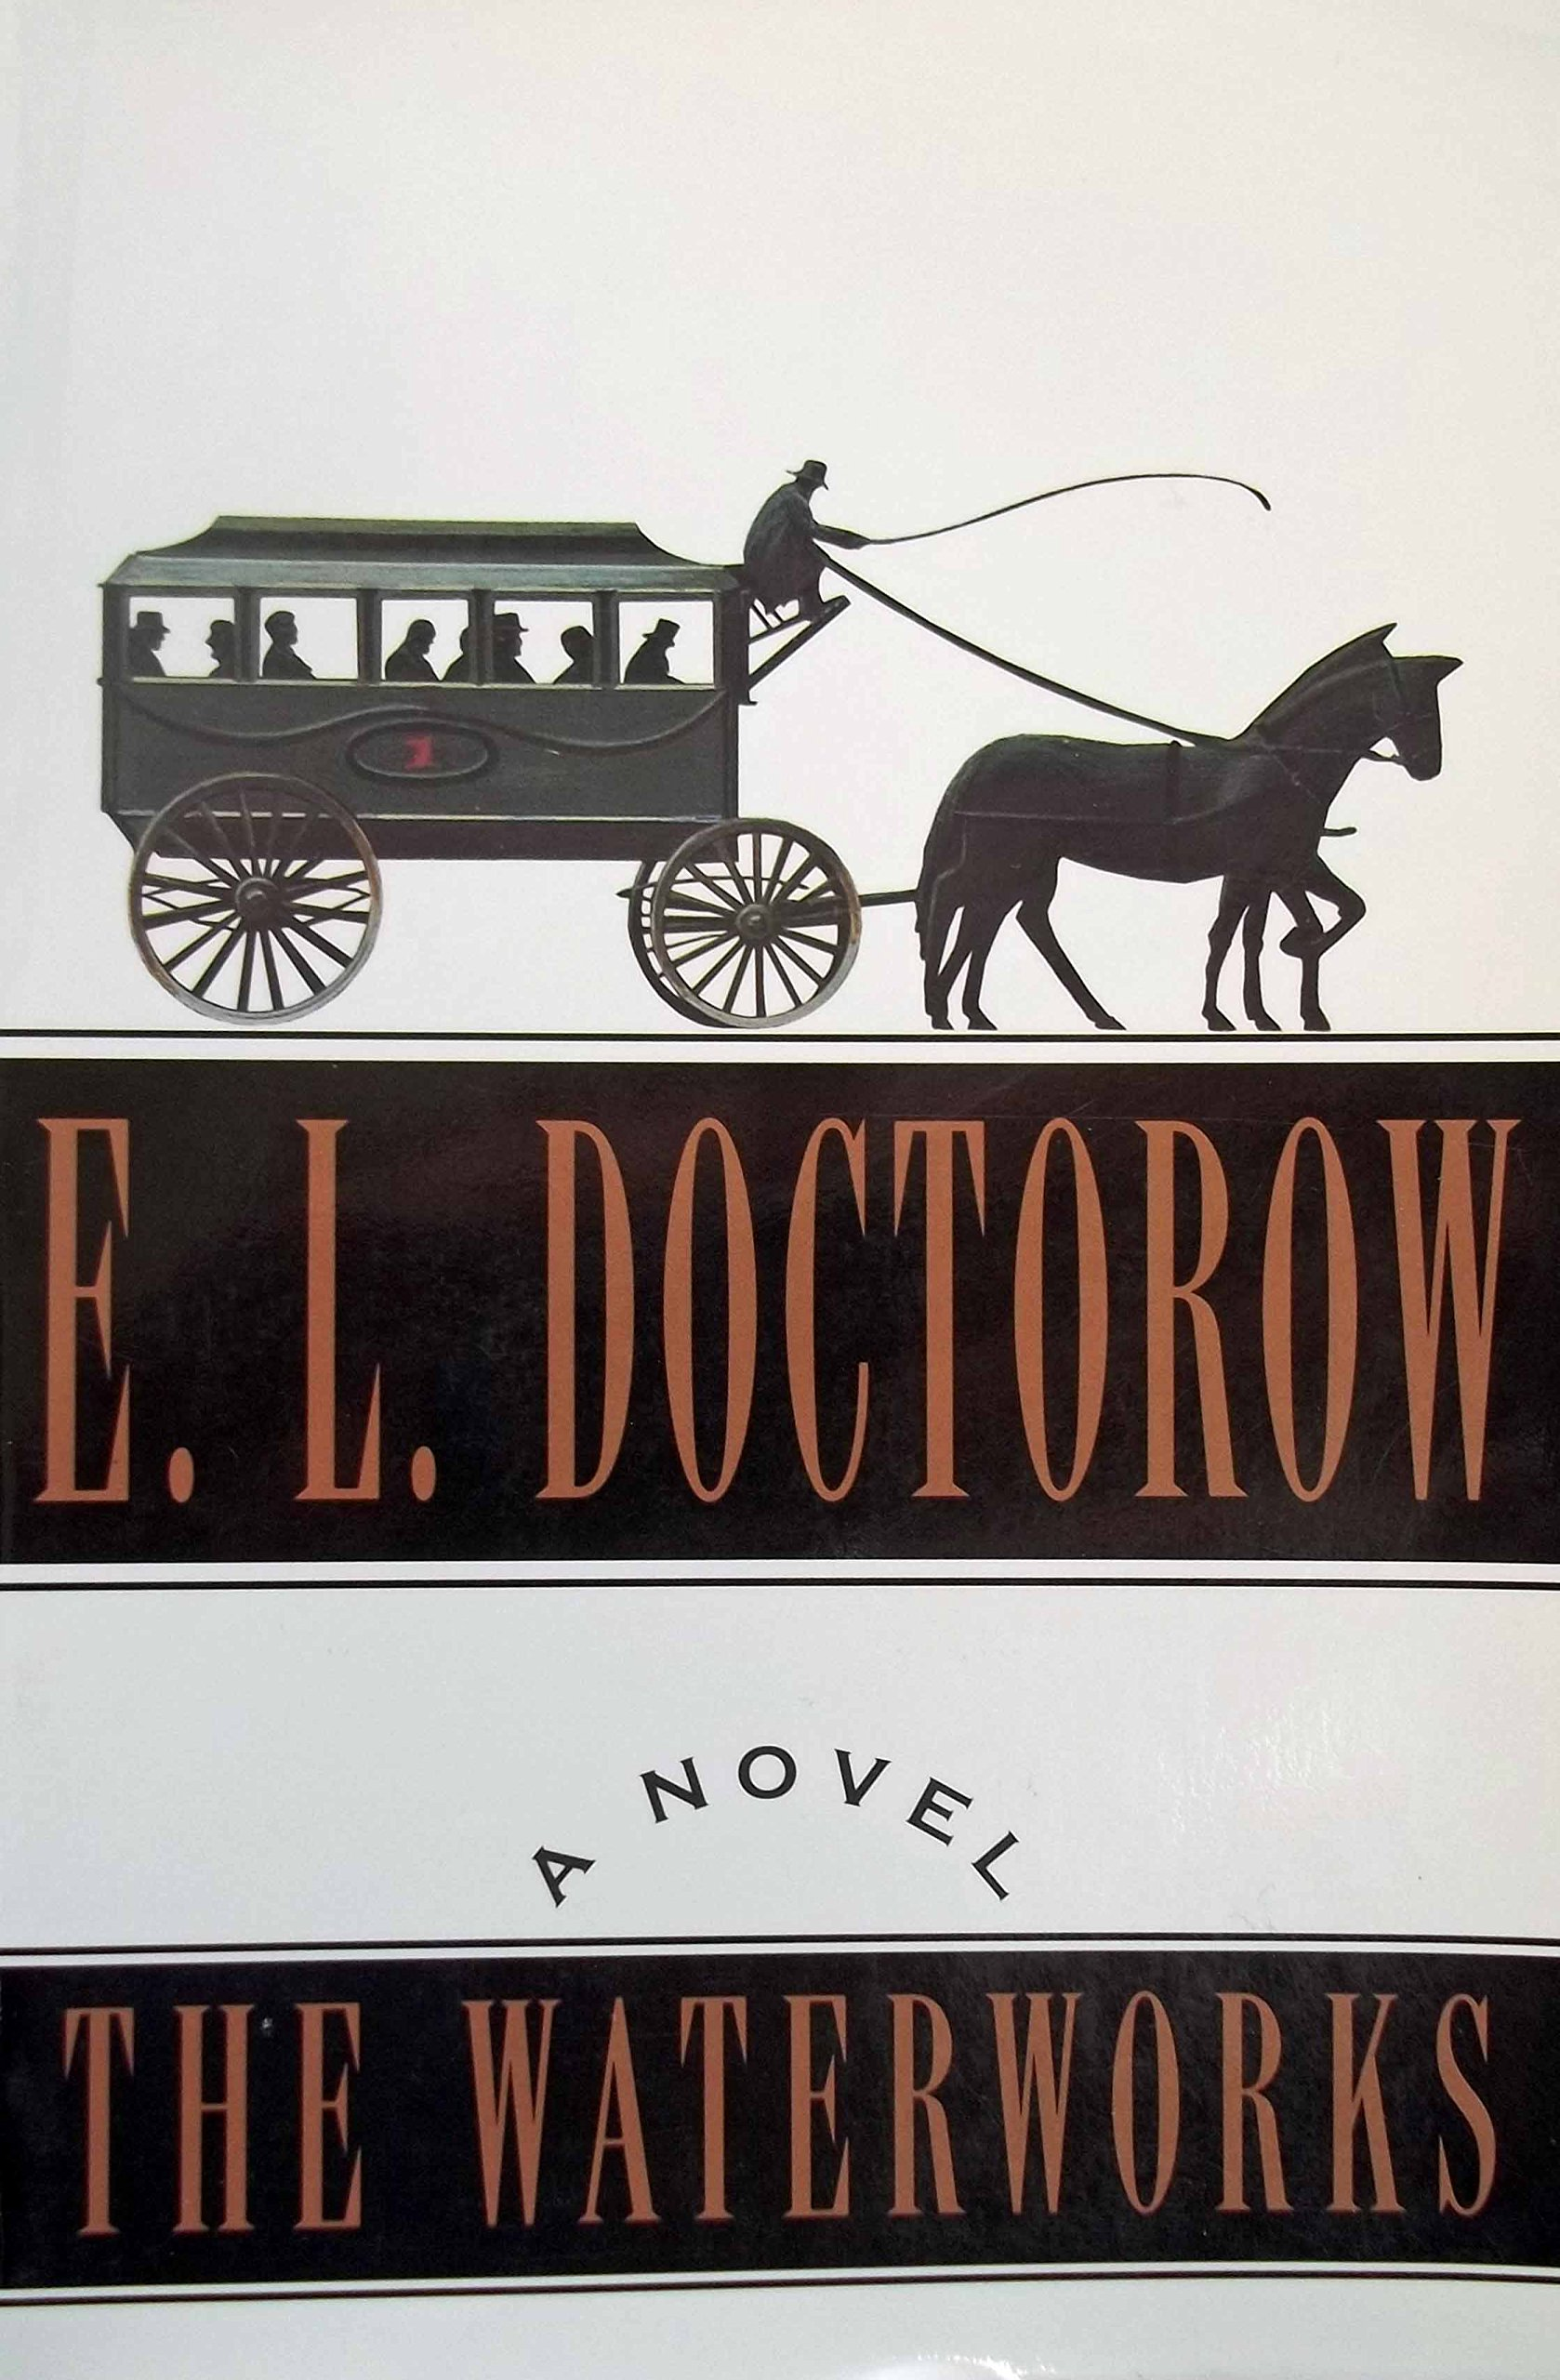 The Waterworks, E.L. Doctorow